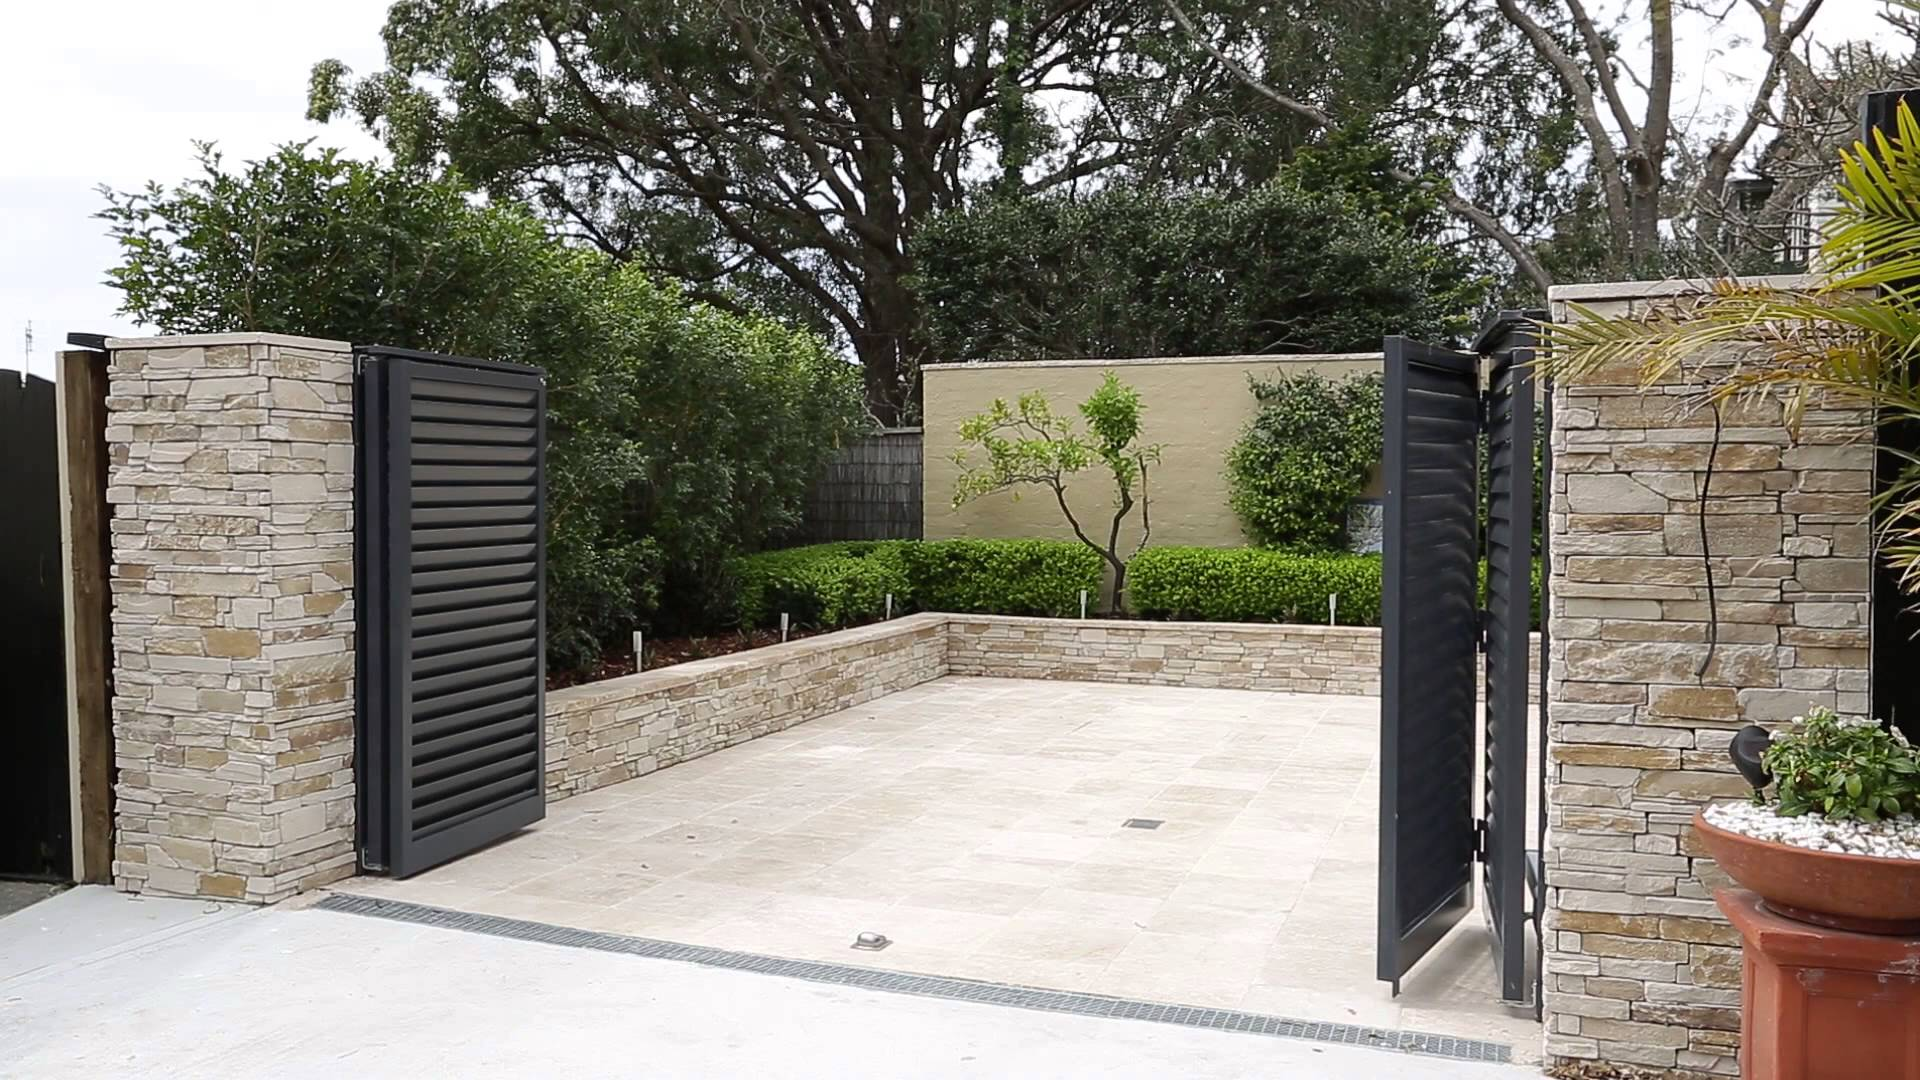 Giardino Yarn Automatic Gates Sliding Gates Mdi Garage Door Remotes